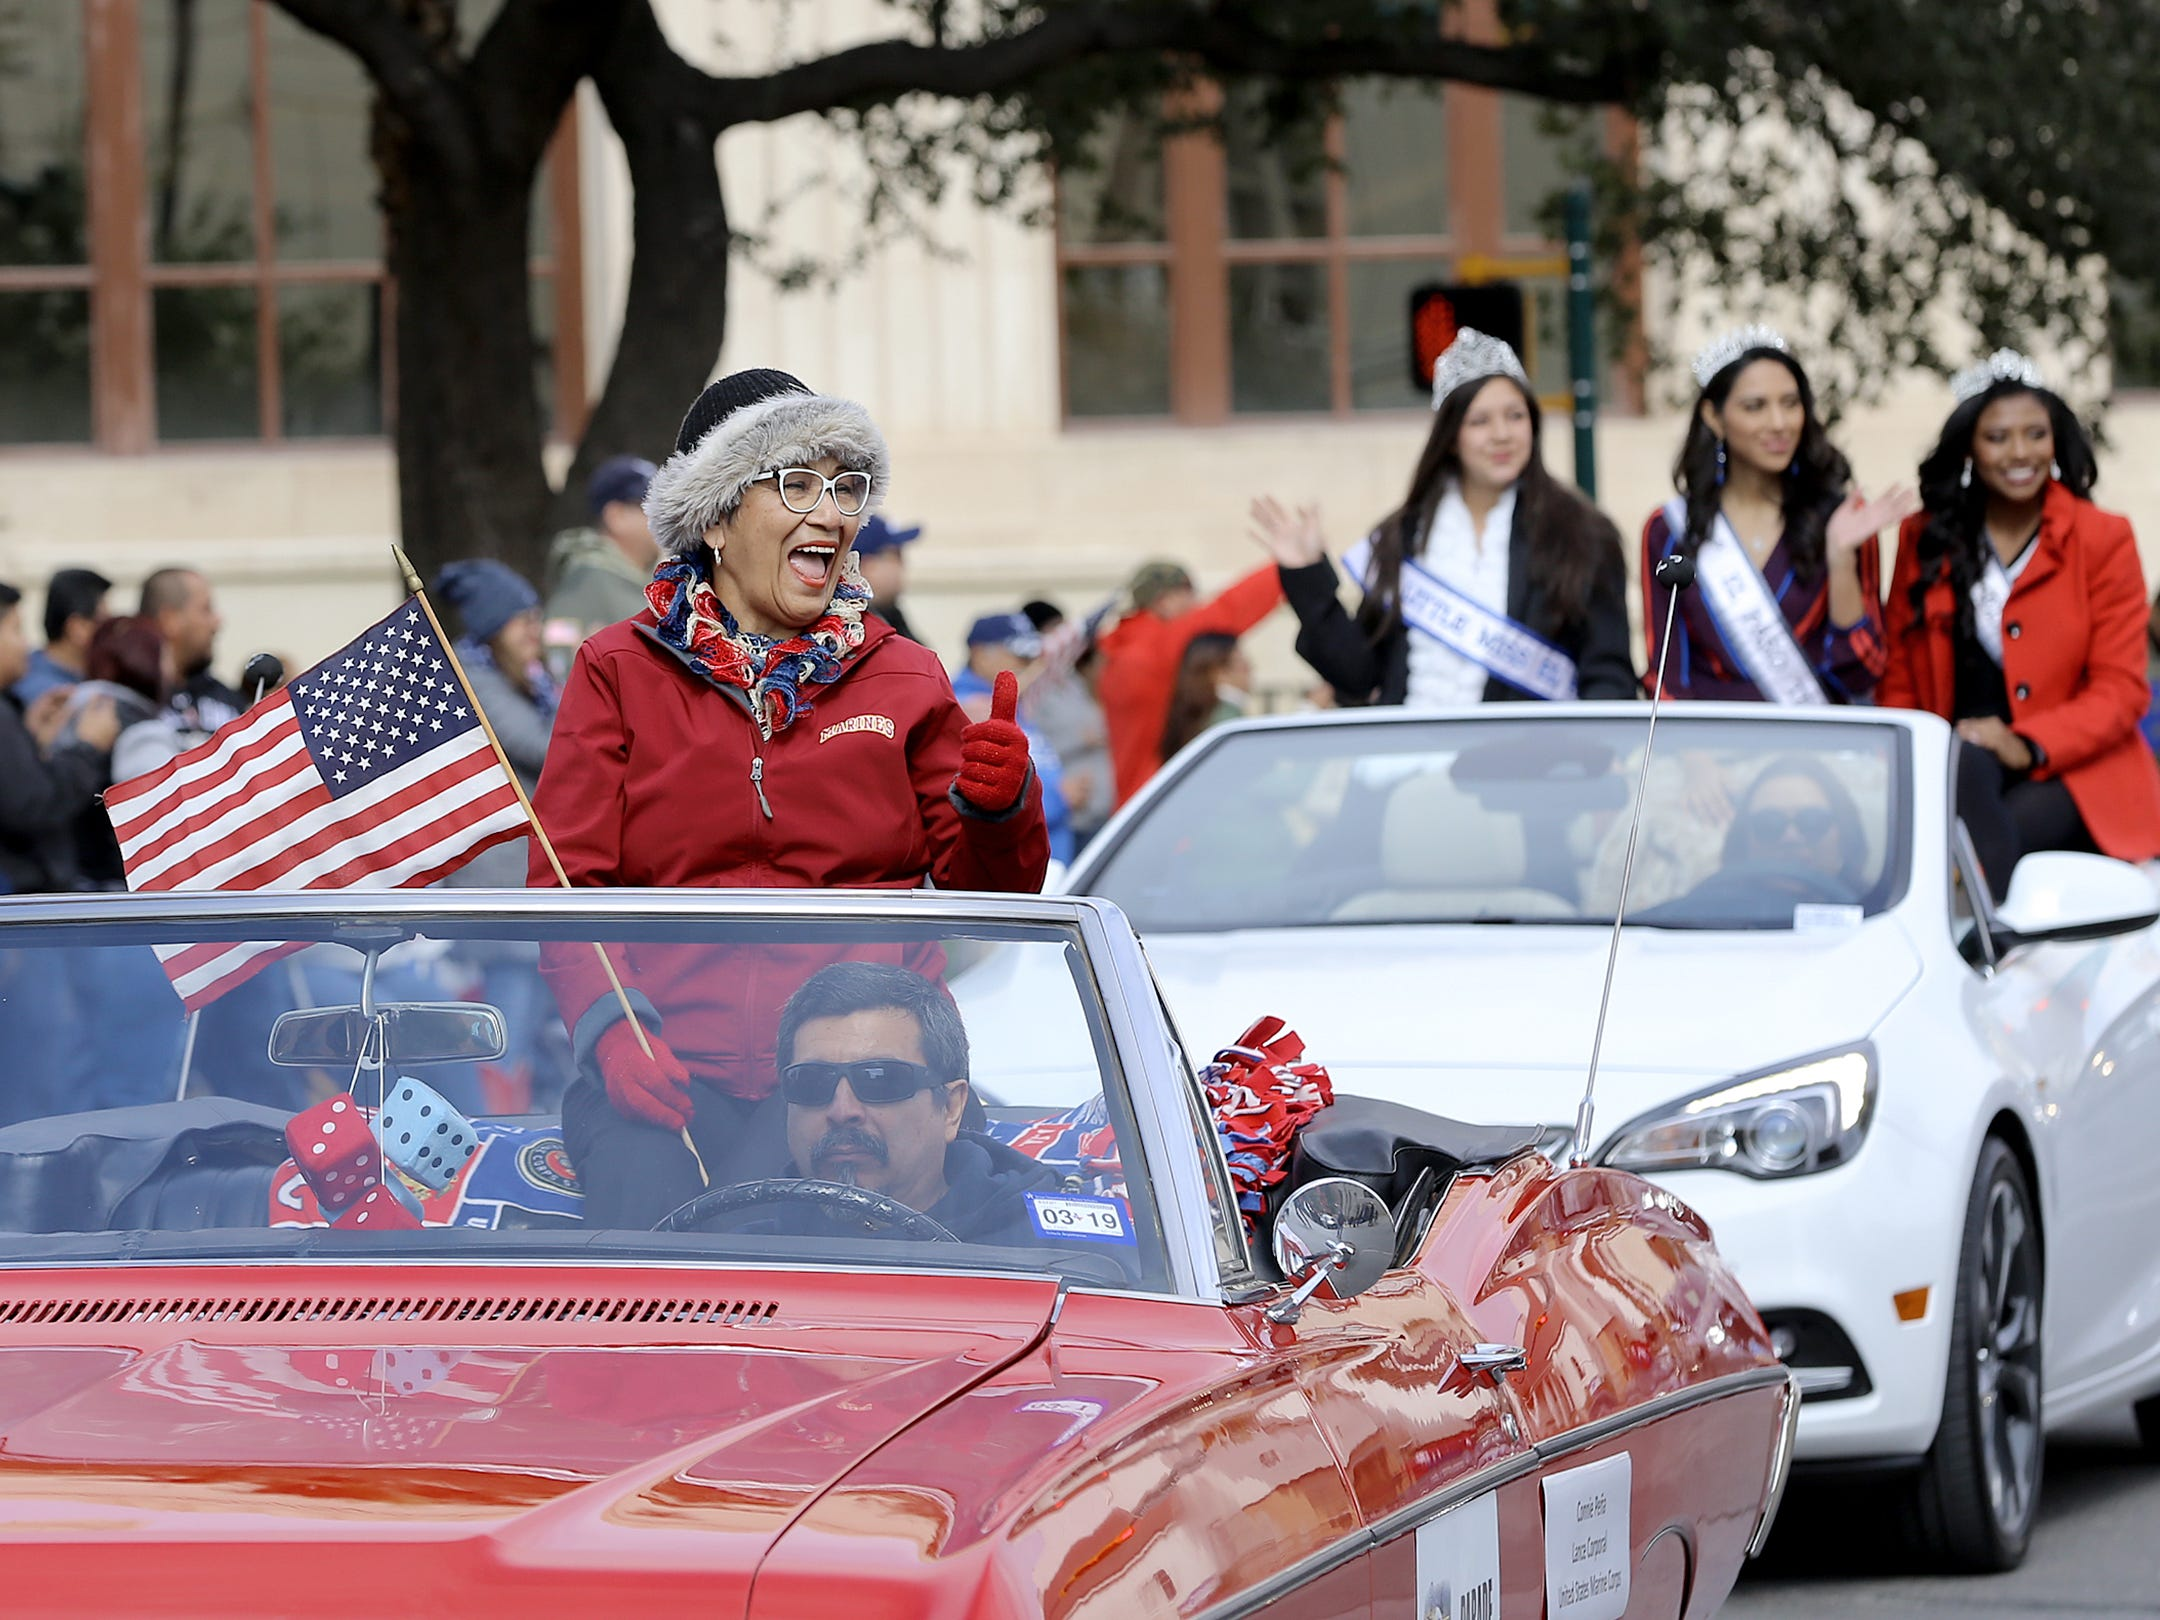 Marine Lance Cpl. Connie Pena served as the parade marshal for this year's Veterans Day Parade on Saturday in Downtown El Paso.